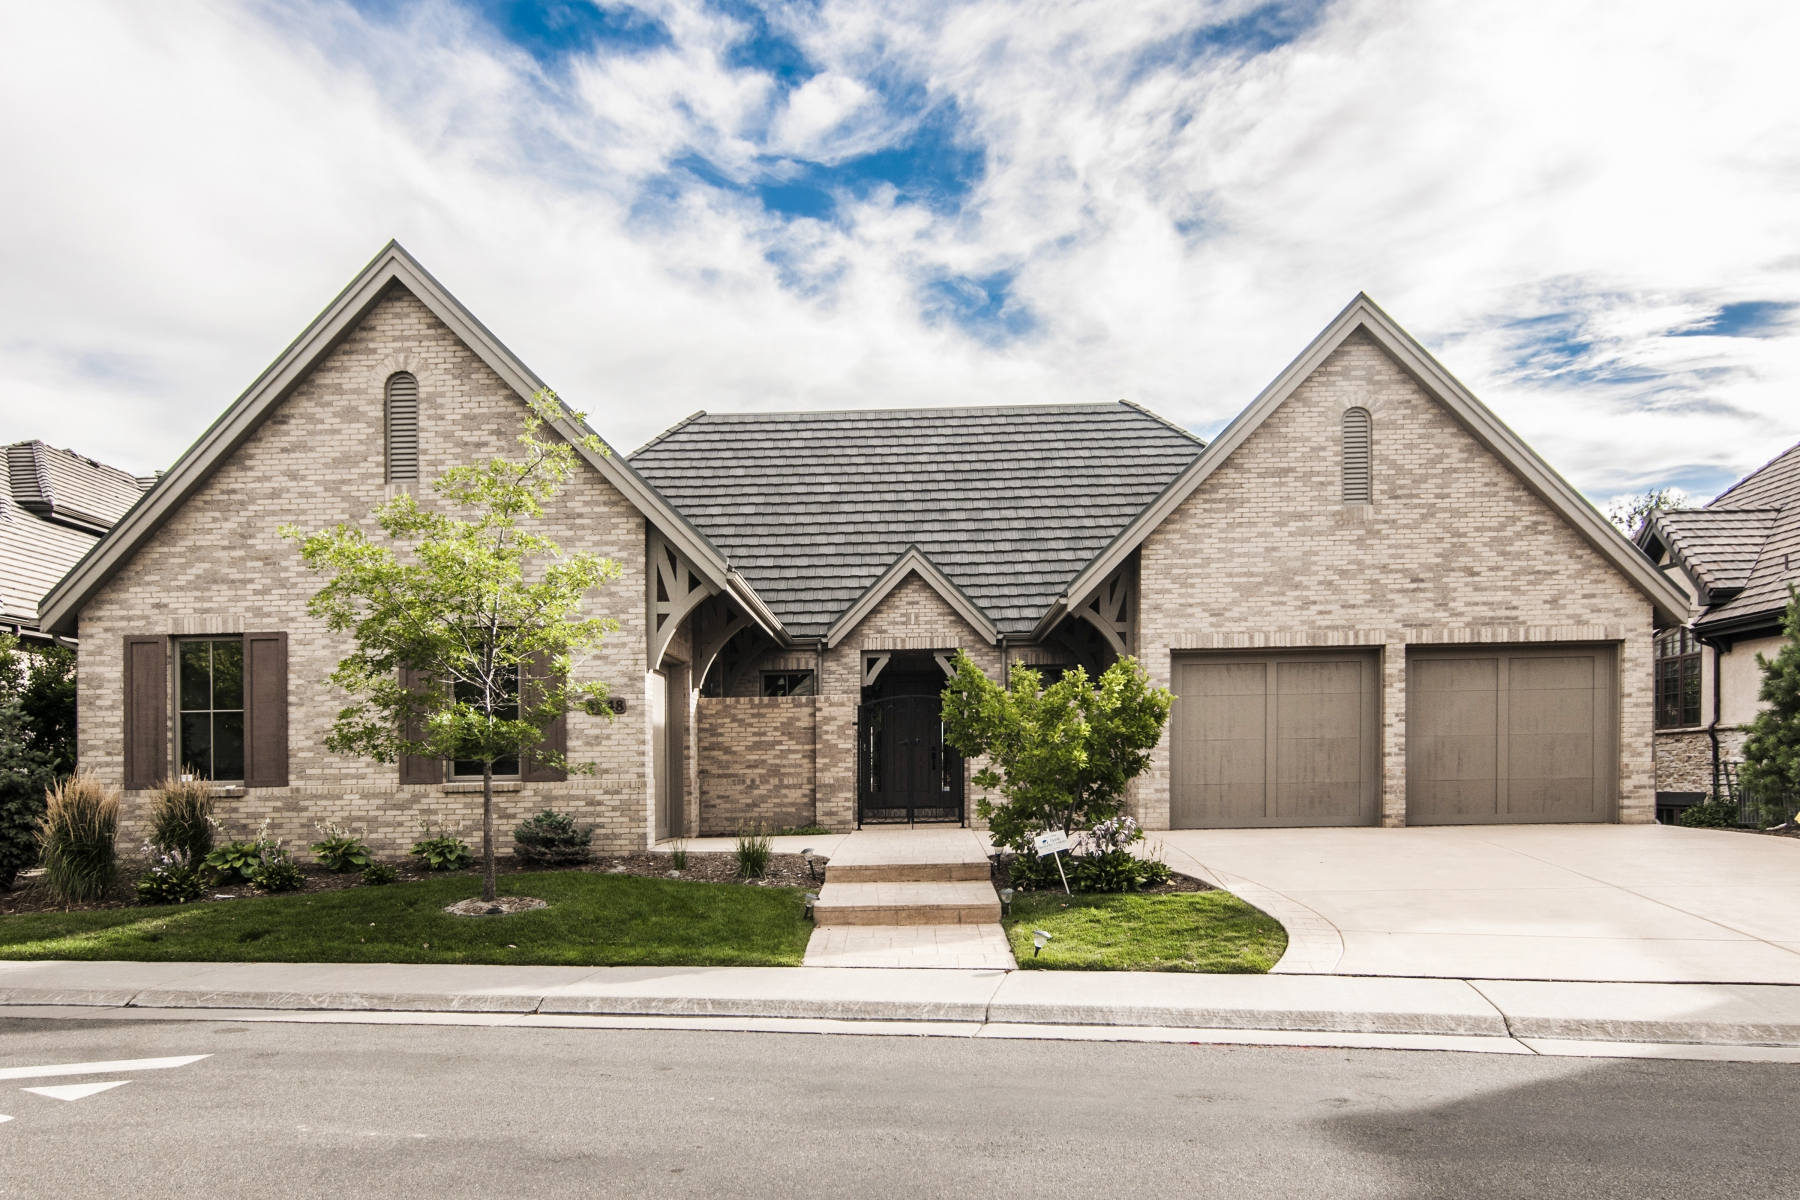 Single Family Home for Sale at Amazing estate located on the fairway of Cherry Creek Country Clun 9248 E Wesley Ave Denver, Colorado 80231 United States